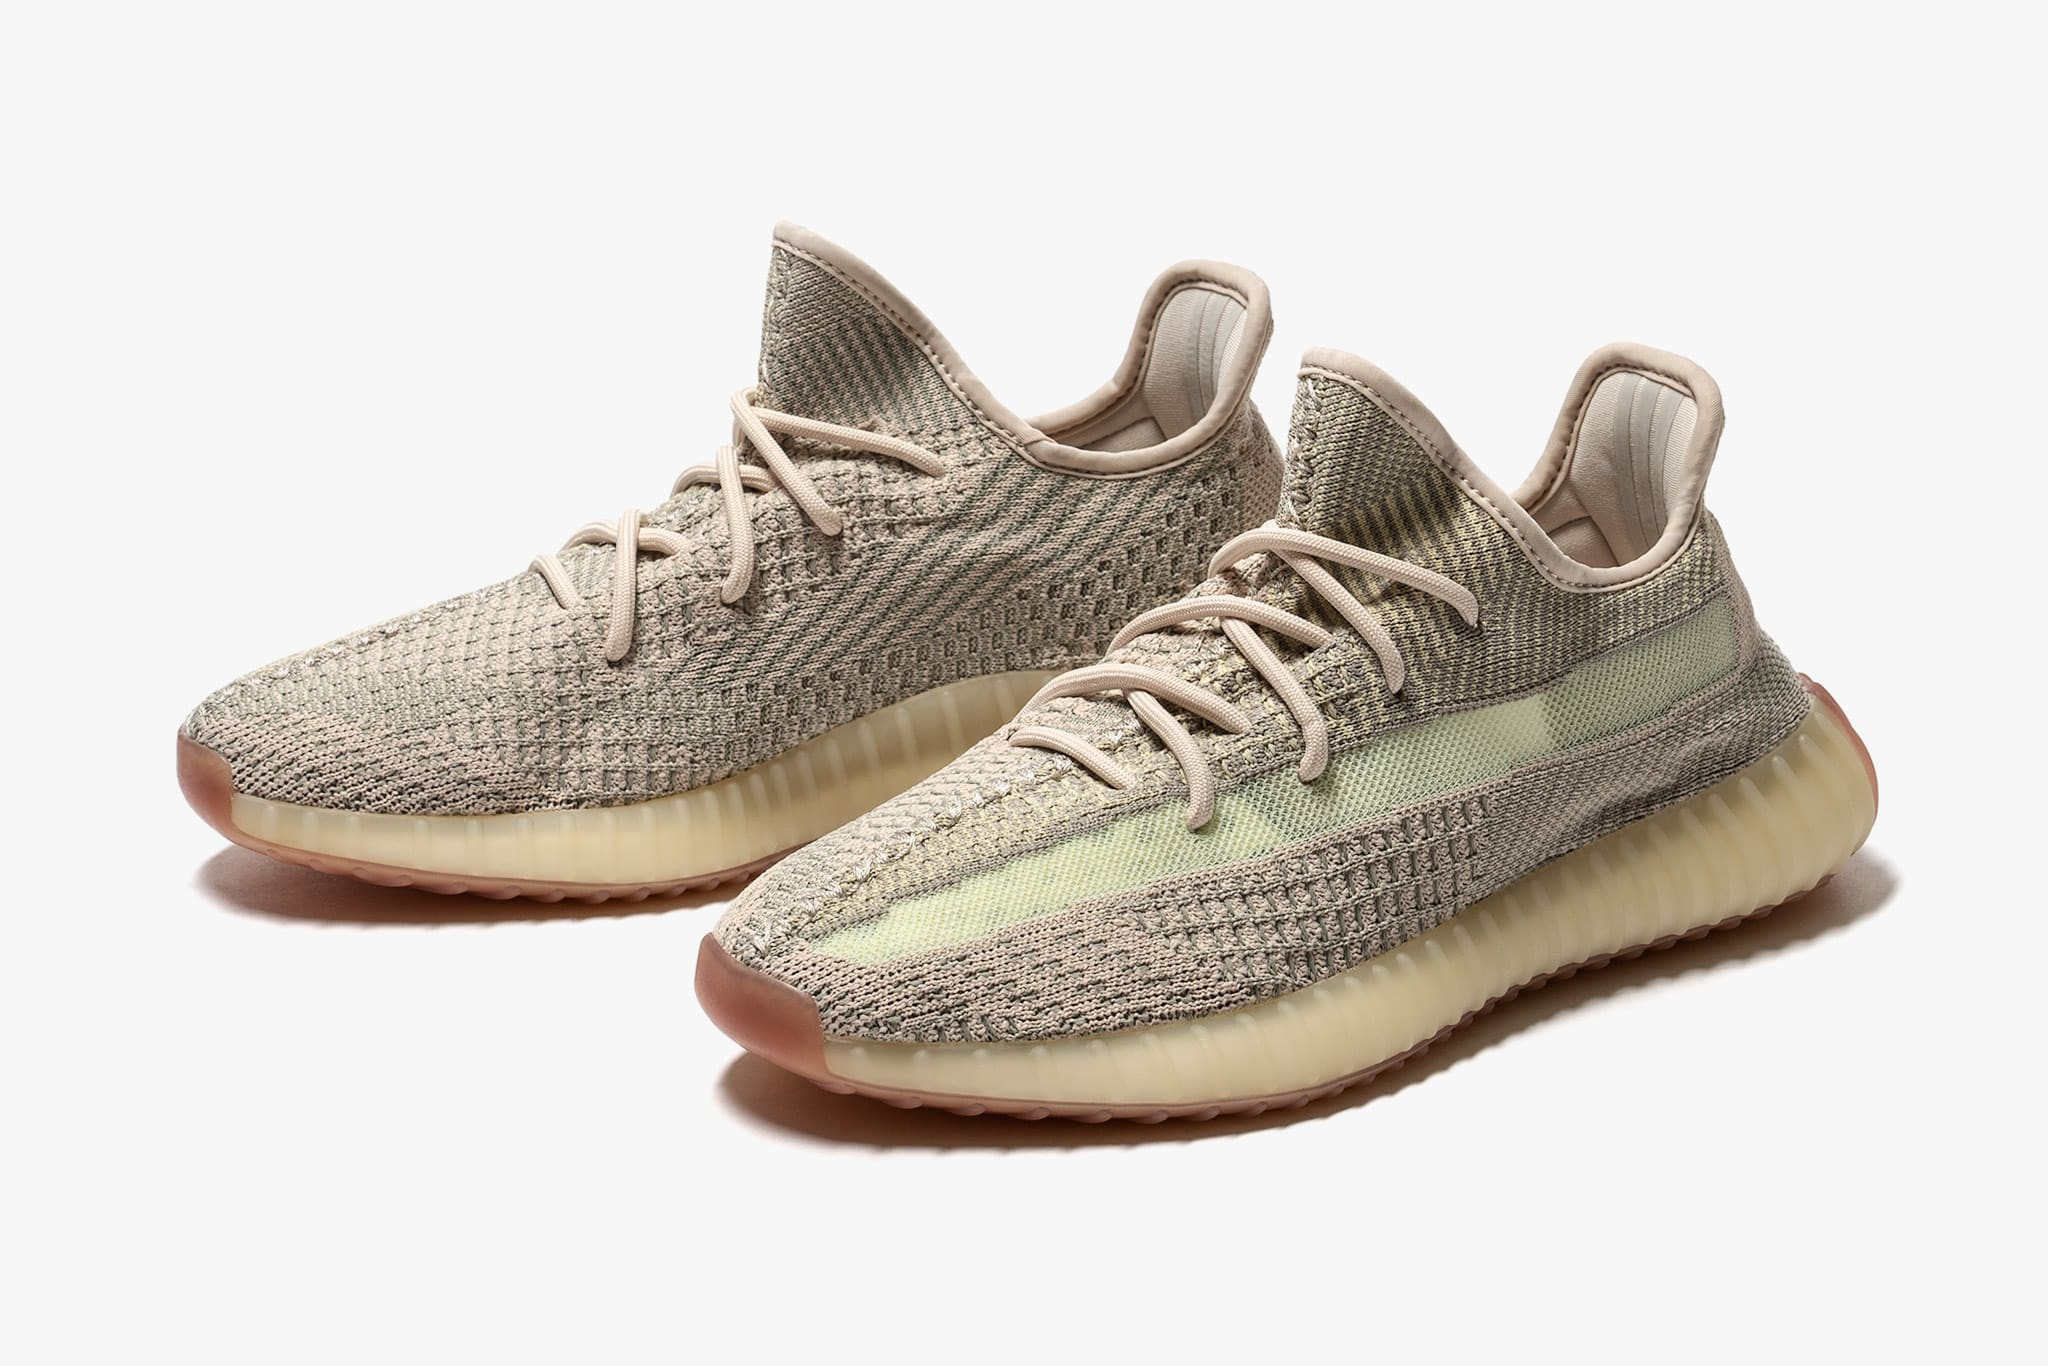 YEEZY 350V2 CITRIN FW19 HAVEN